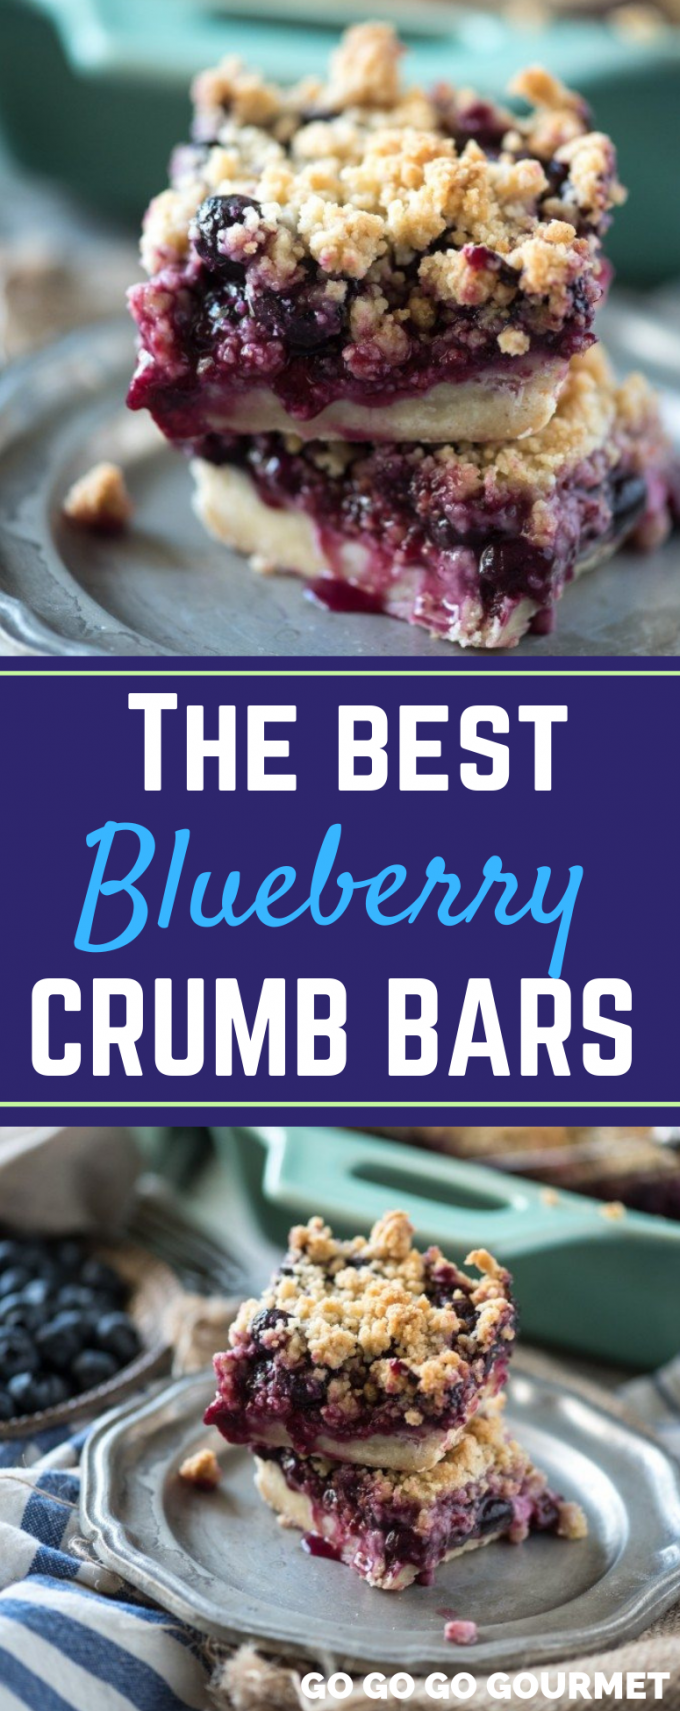 These easy Blueberry Crumb Bars are even better than the Smitten Kitchen recipe! With lemon zest, lots of fresh blueberries, and a crumble topping, these fruit bars are sure to be a hit with everyone! #gogogogourmet #blueberrycrumbbars #blueberrydesserts #springdesserts via @gogogogourmet